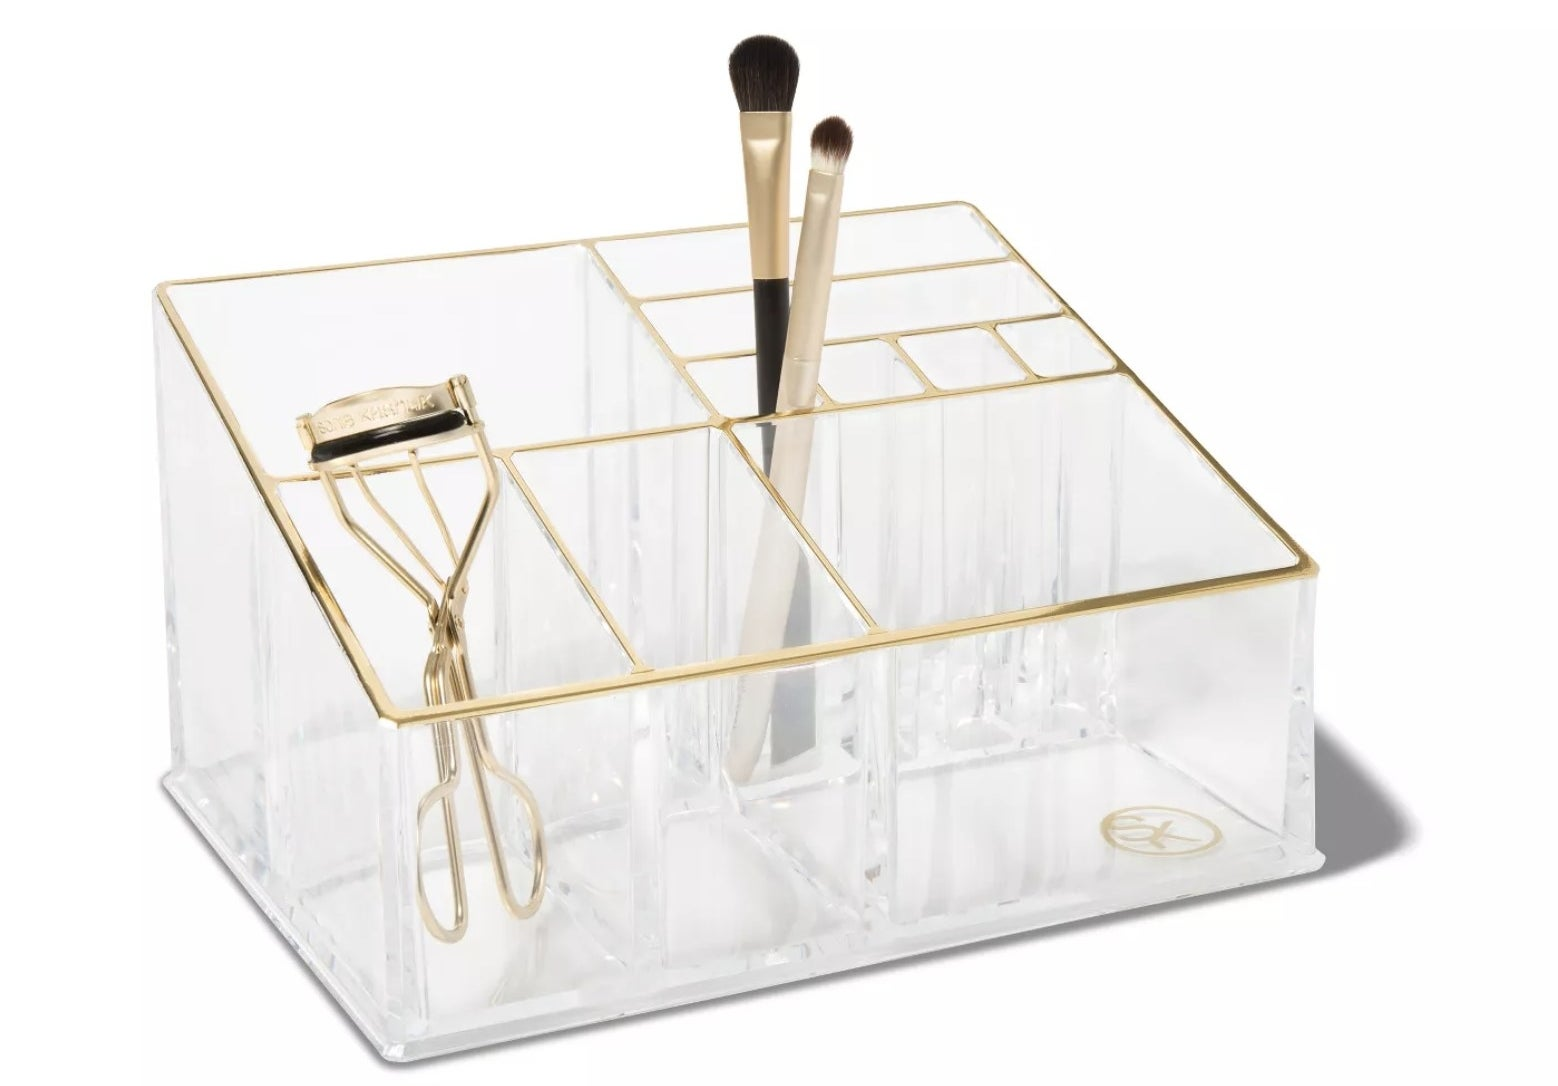 The clear makeup organizing tray